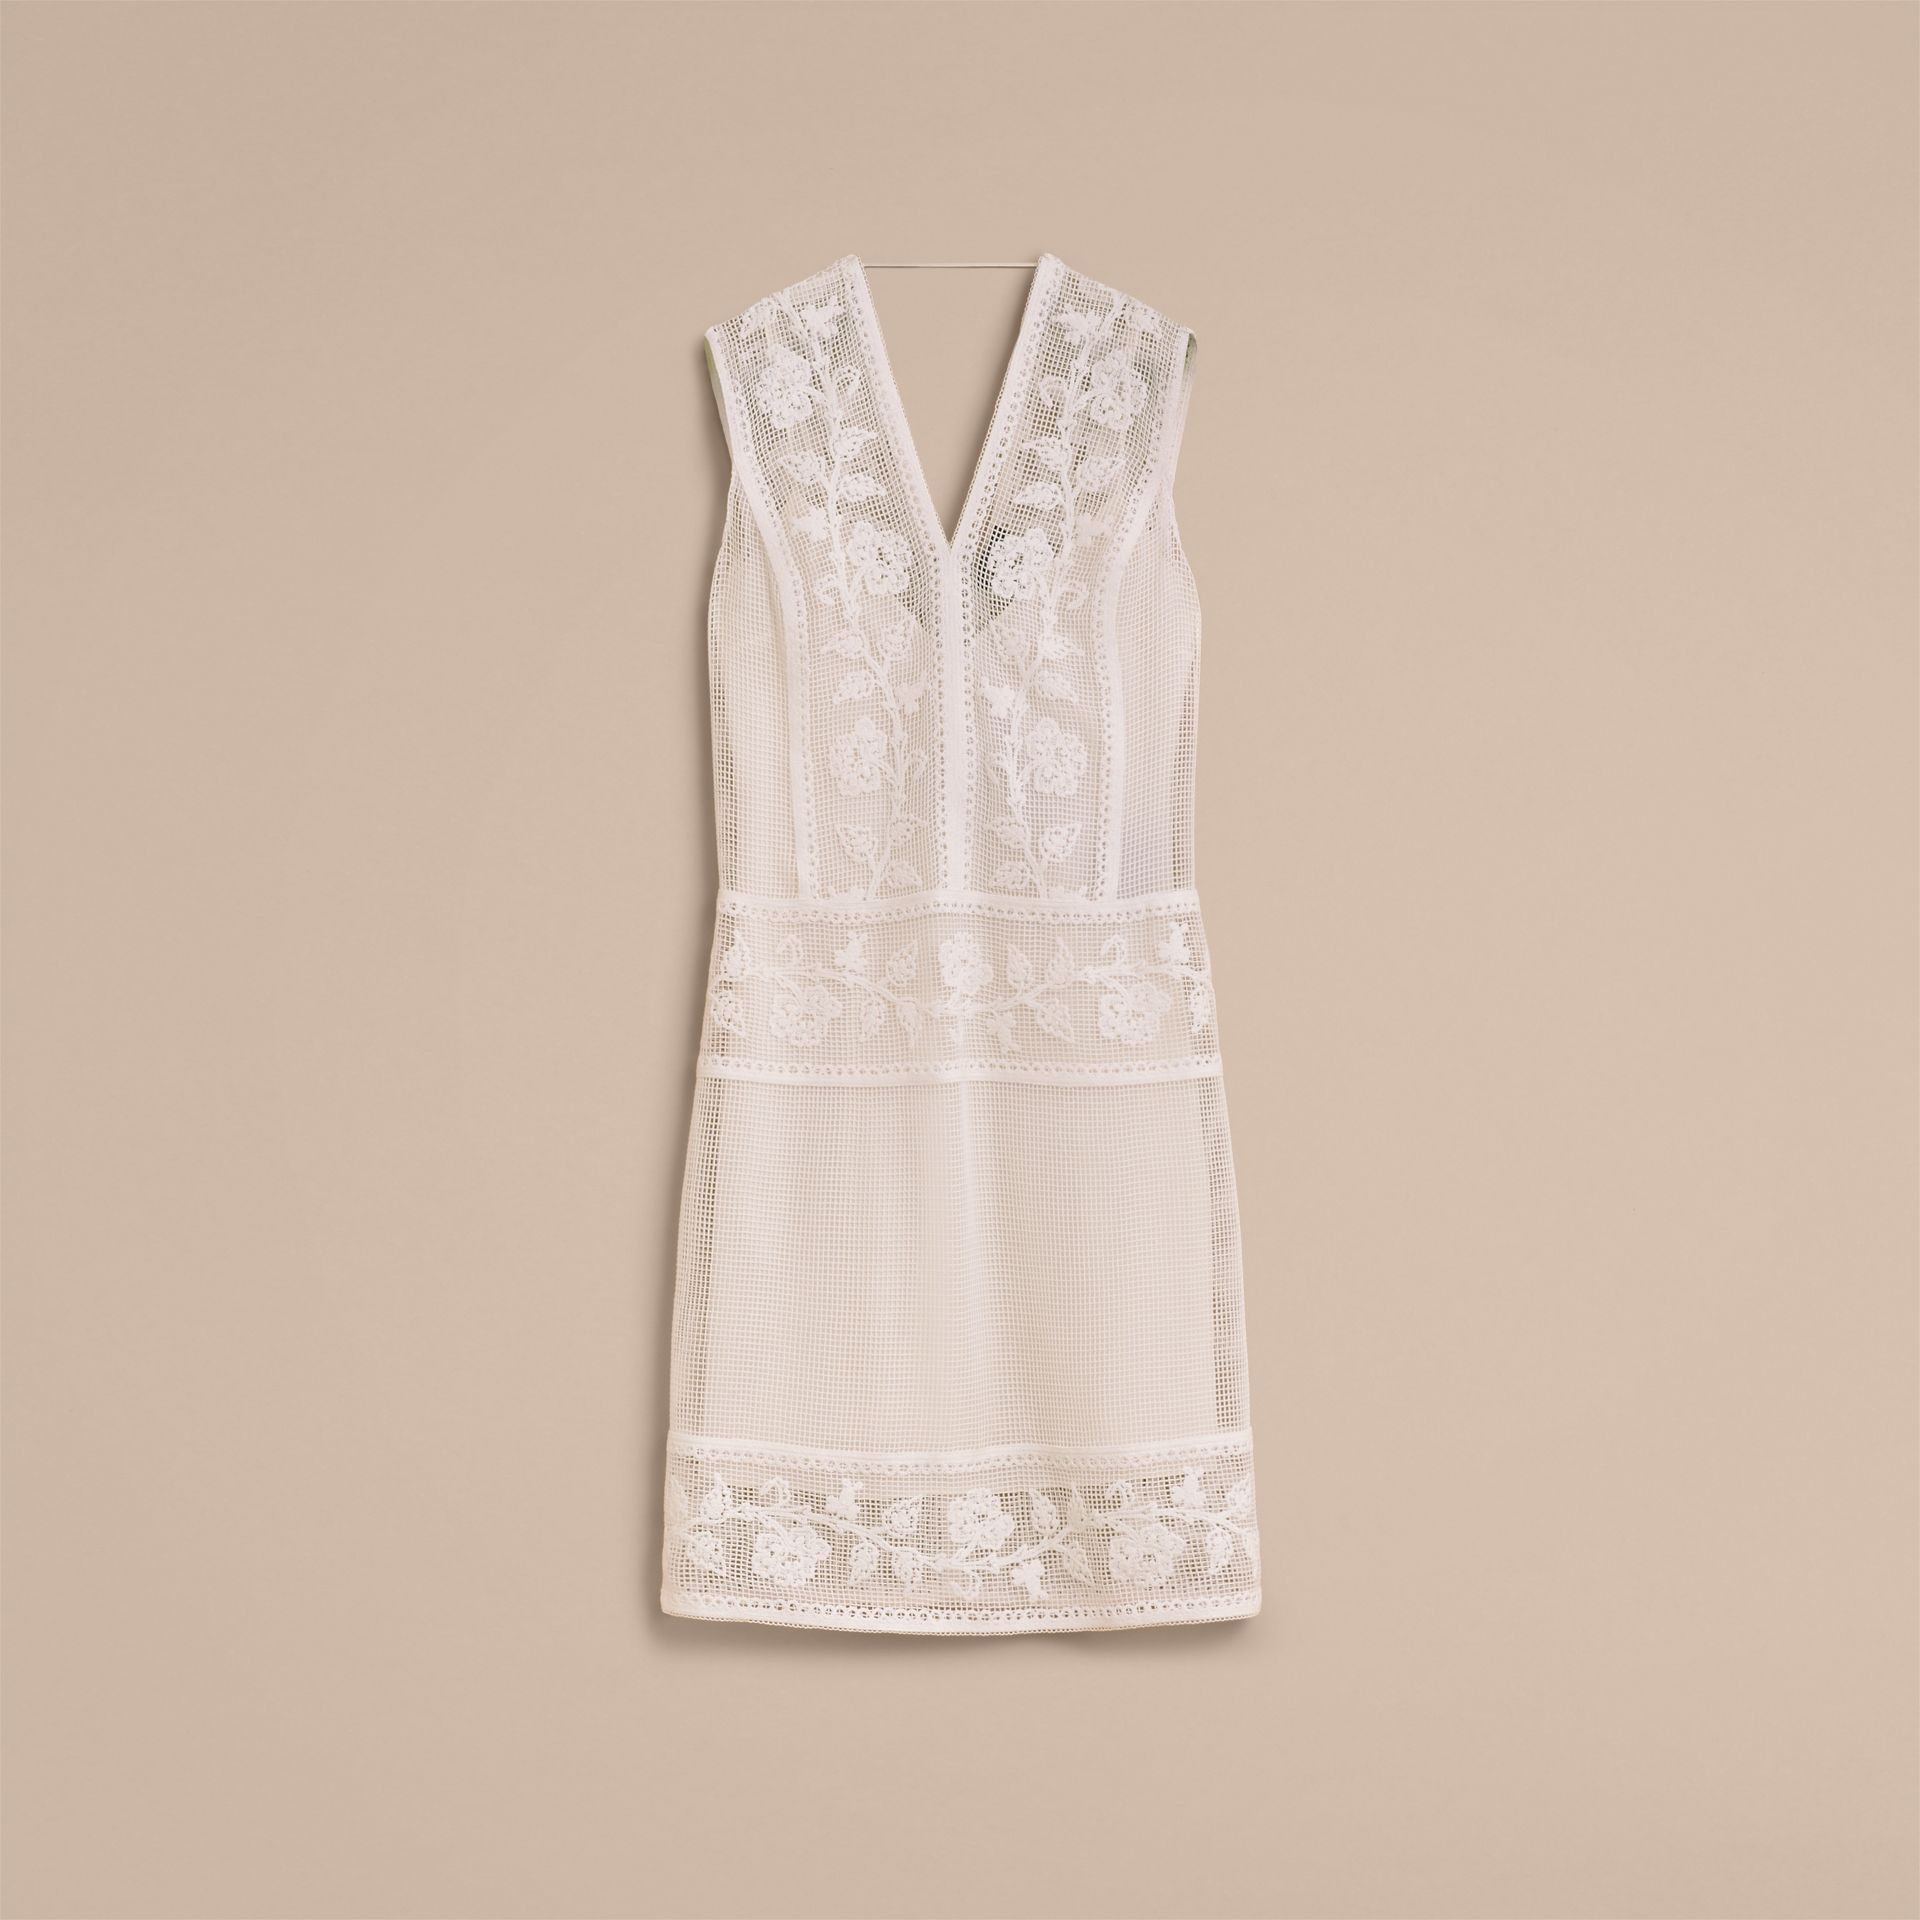 Net and Floral Macramé Lace Panel Dress in Off White - Women | Burberry Singapore - gallery image 4